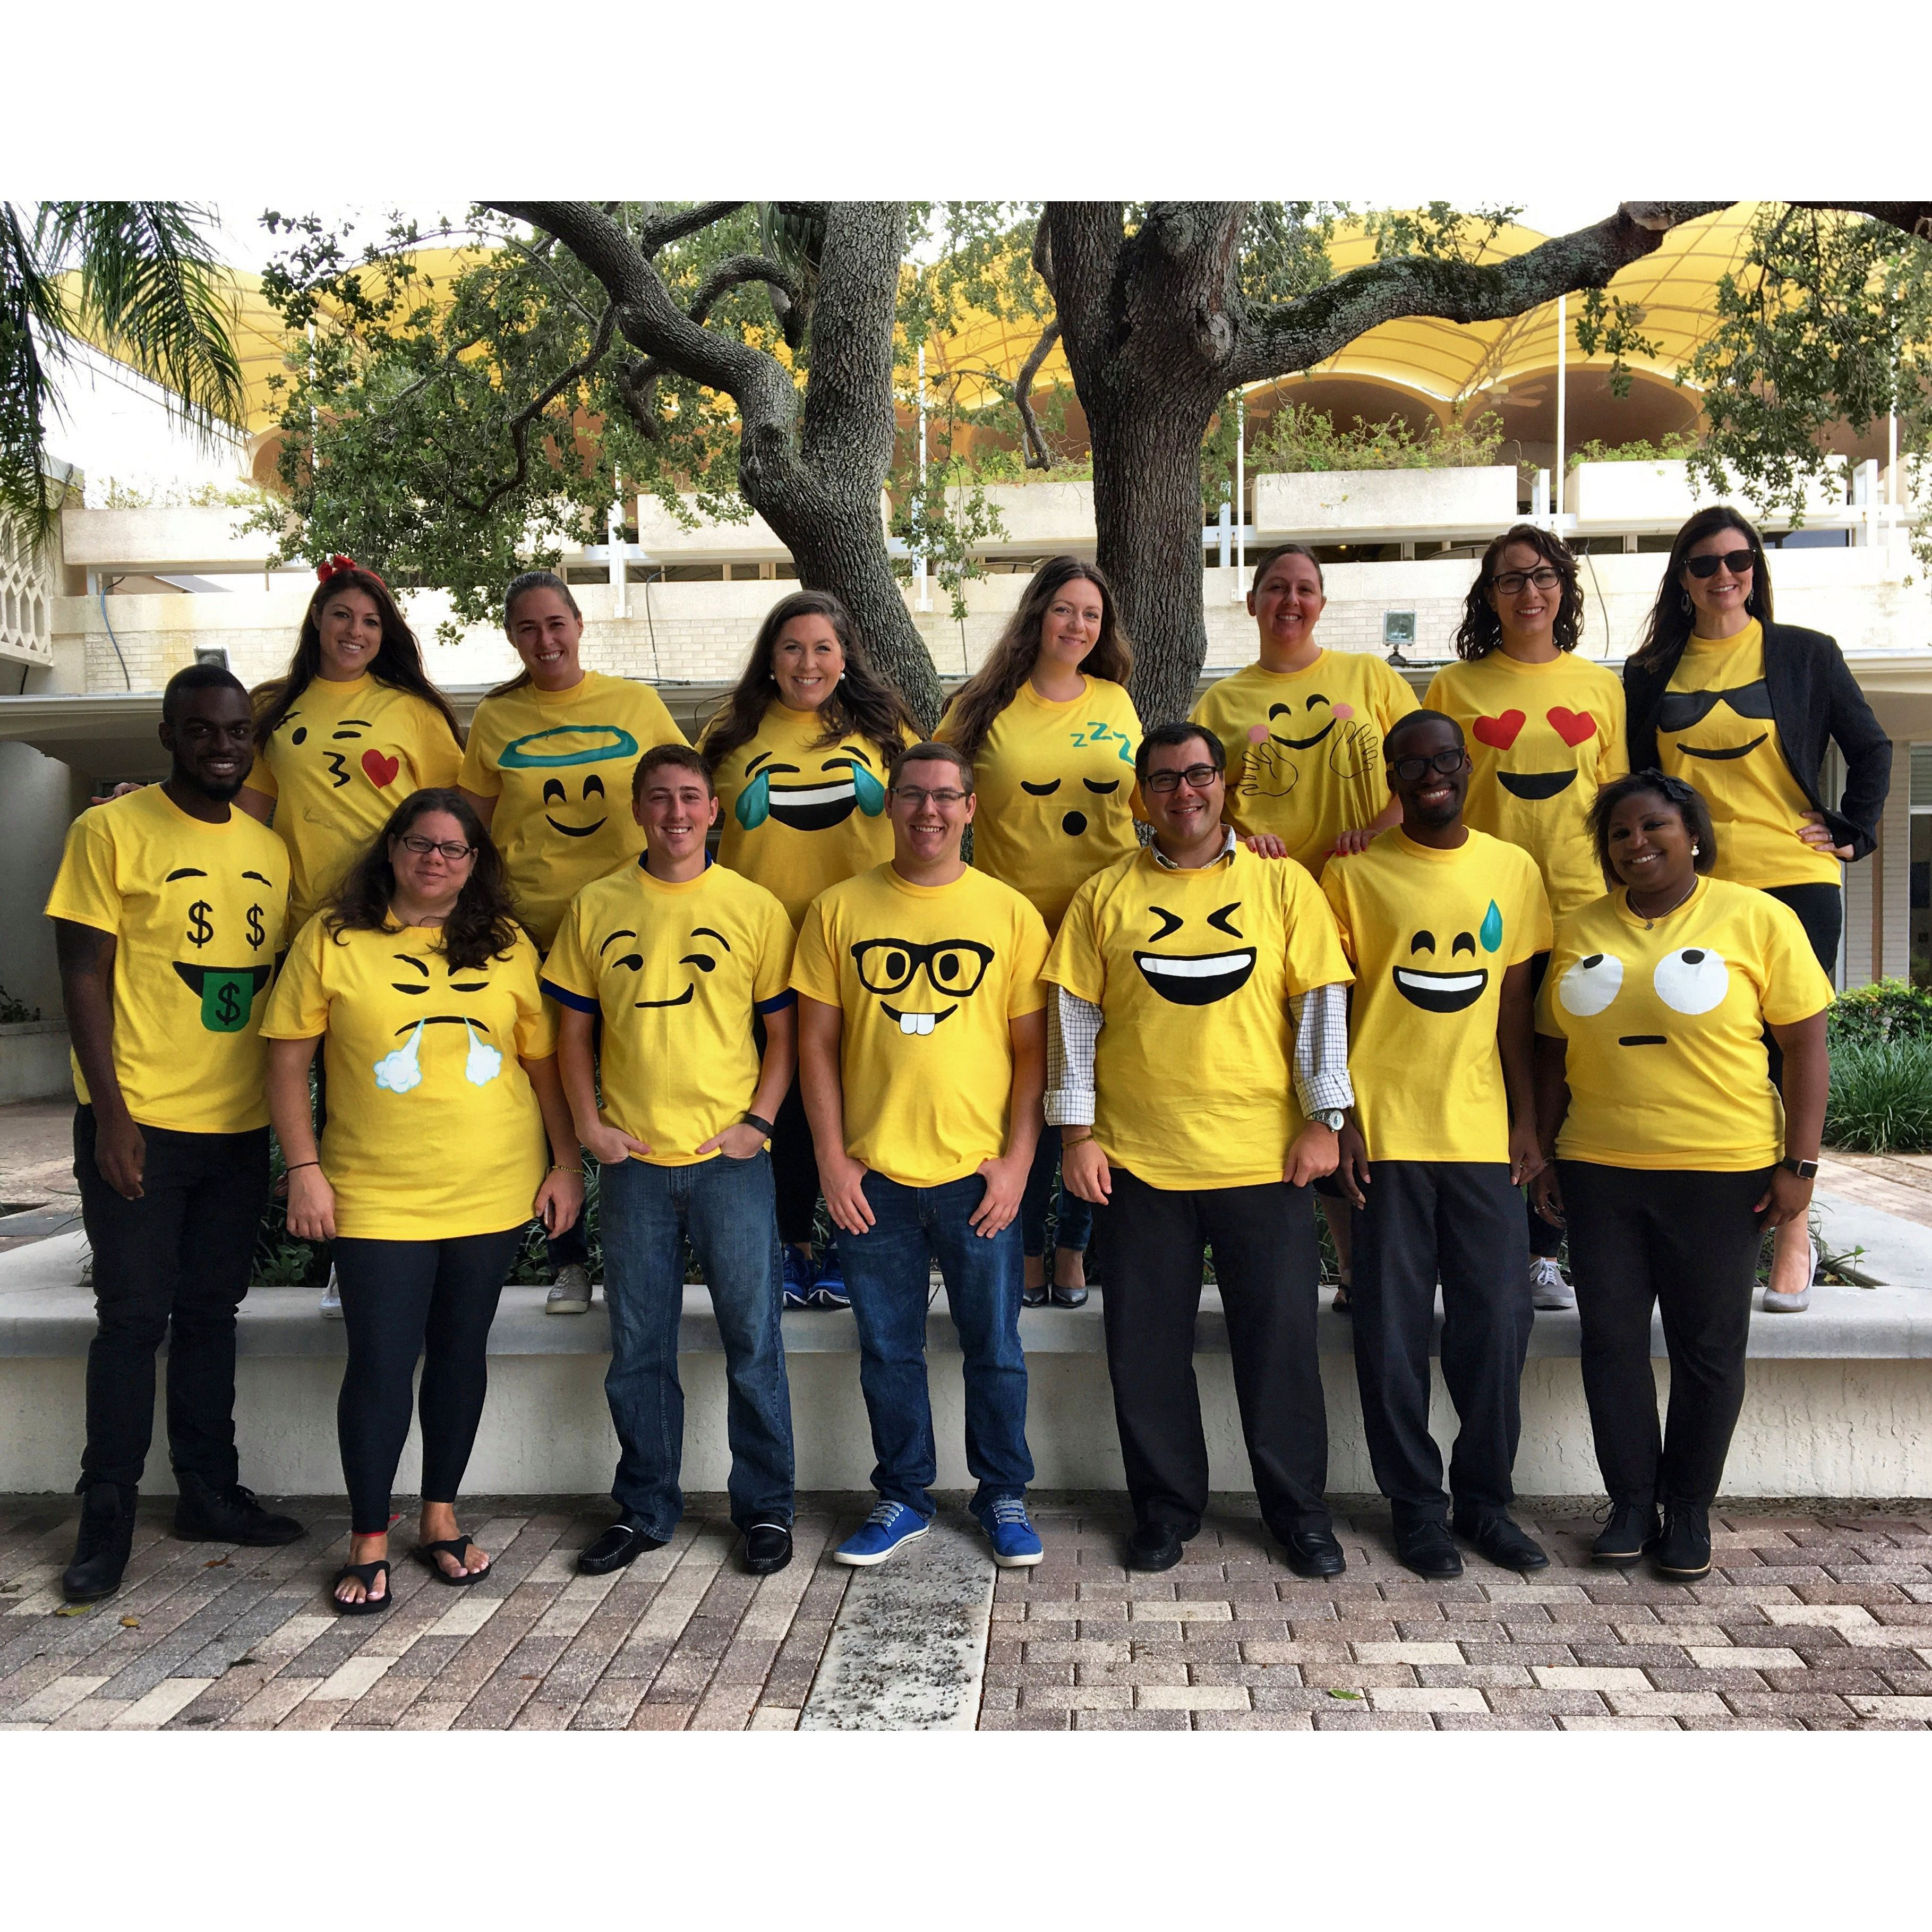 Easy emoji shirts for a great staff costume yellow shirts for Event staff shirt ideas